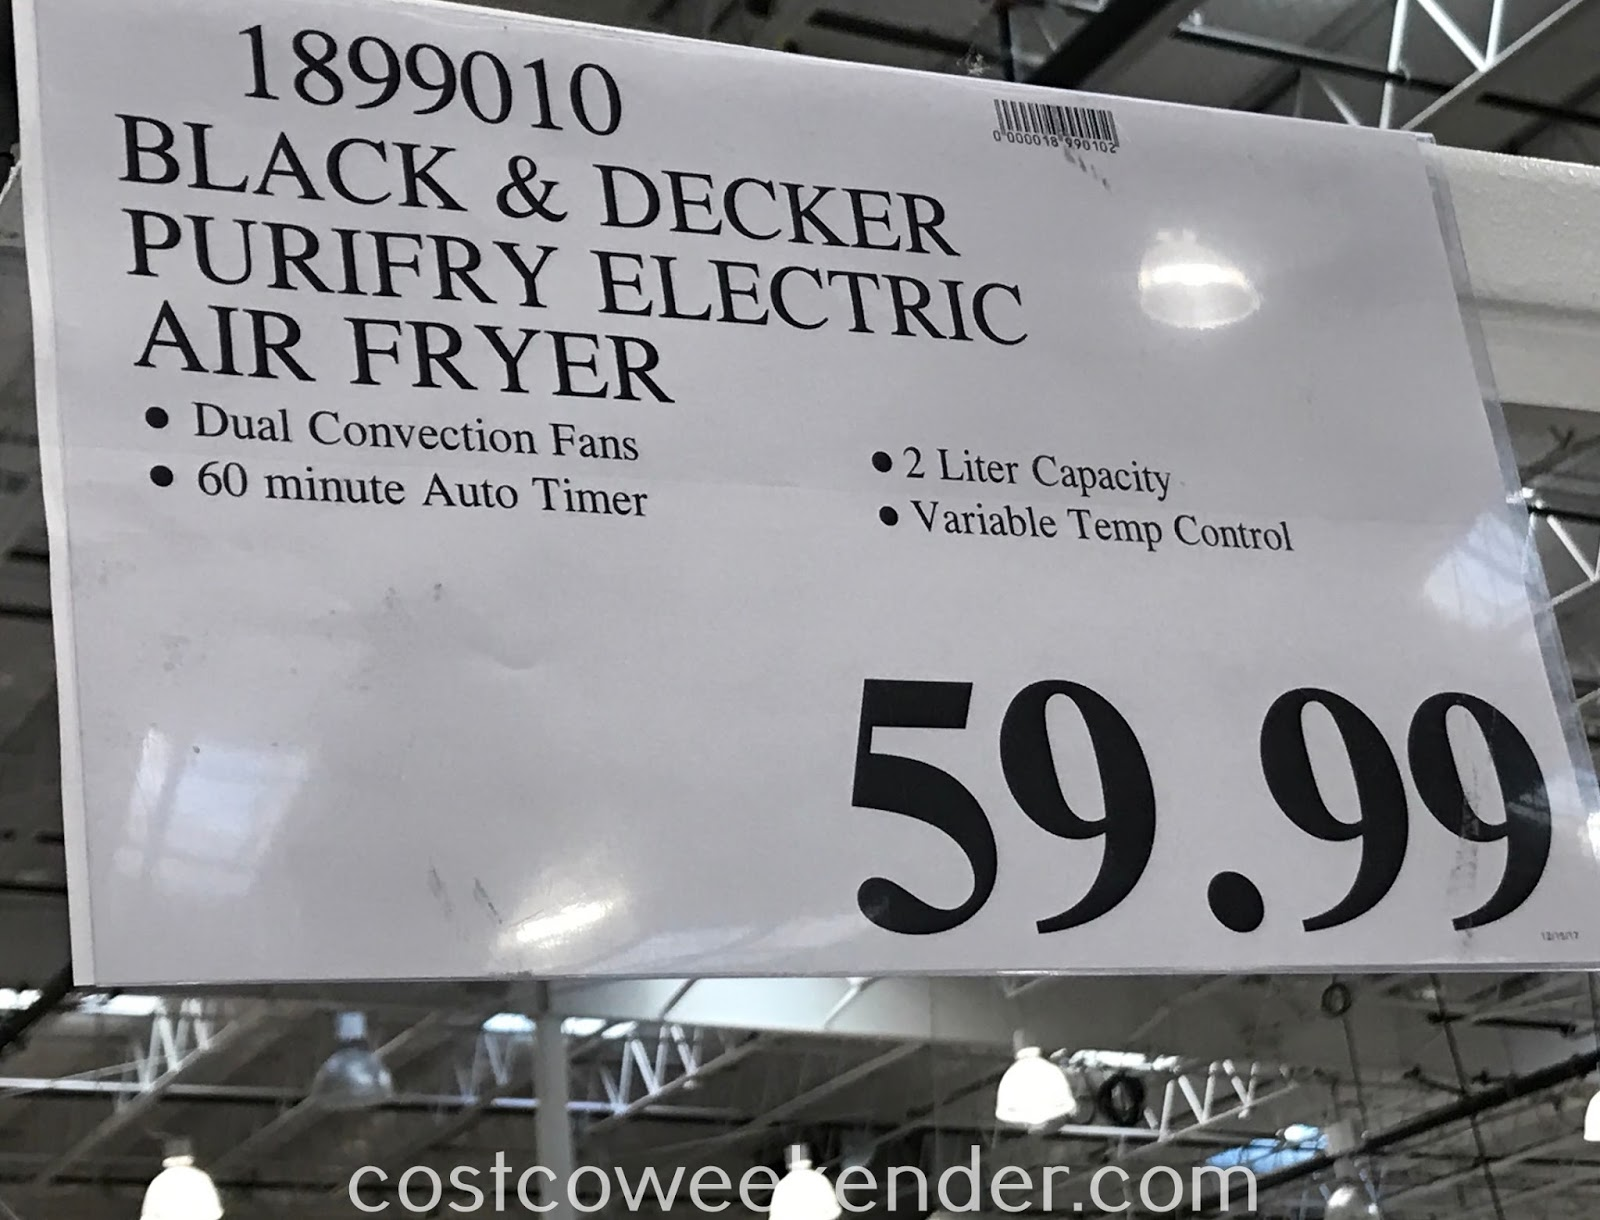 Deal for the Black & Decker Purify 2L Capacity Air Fryer at Costco